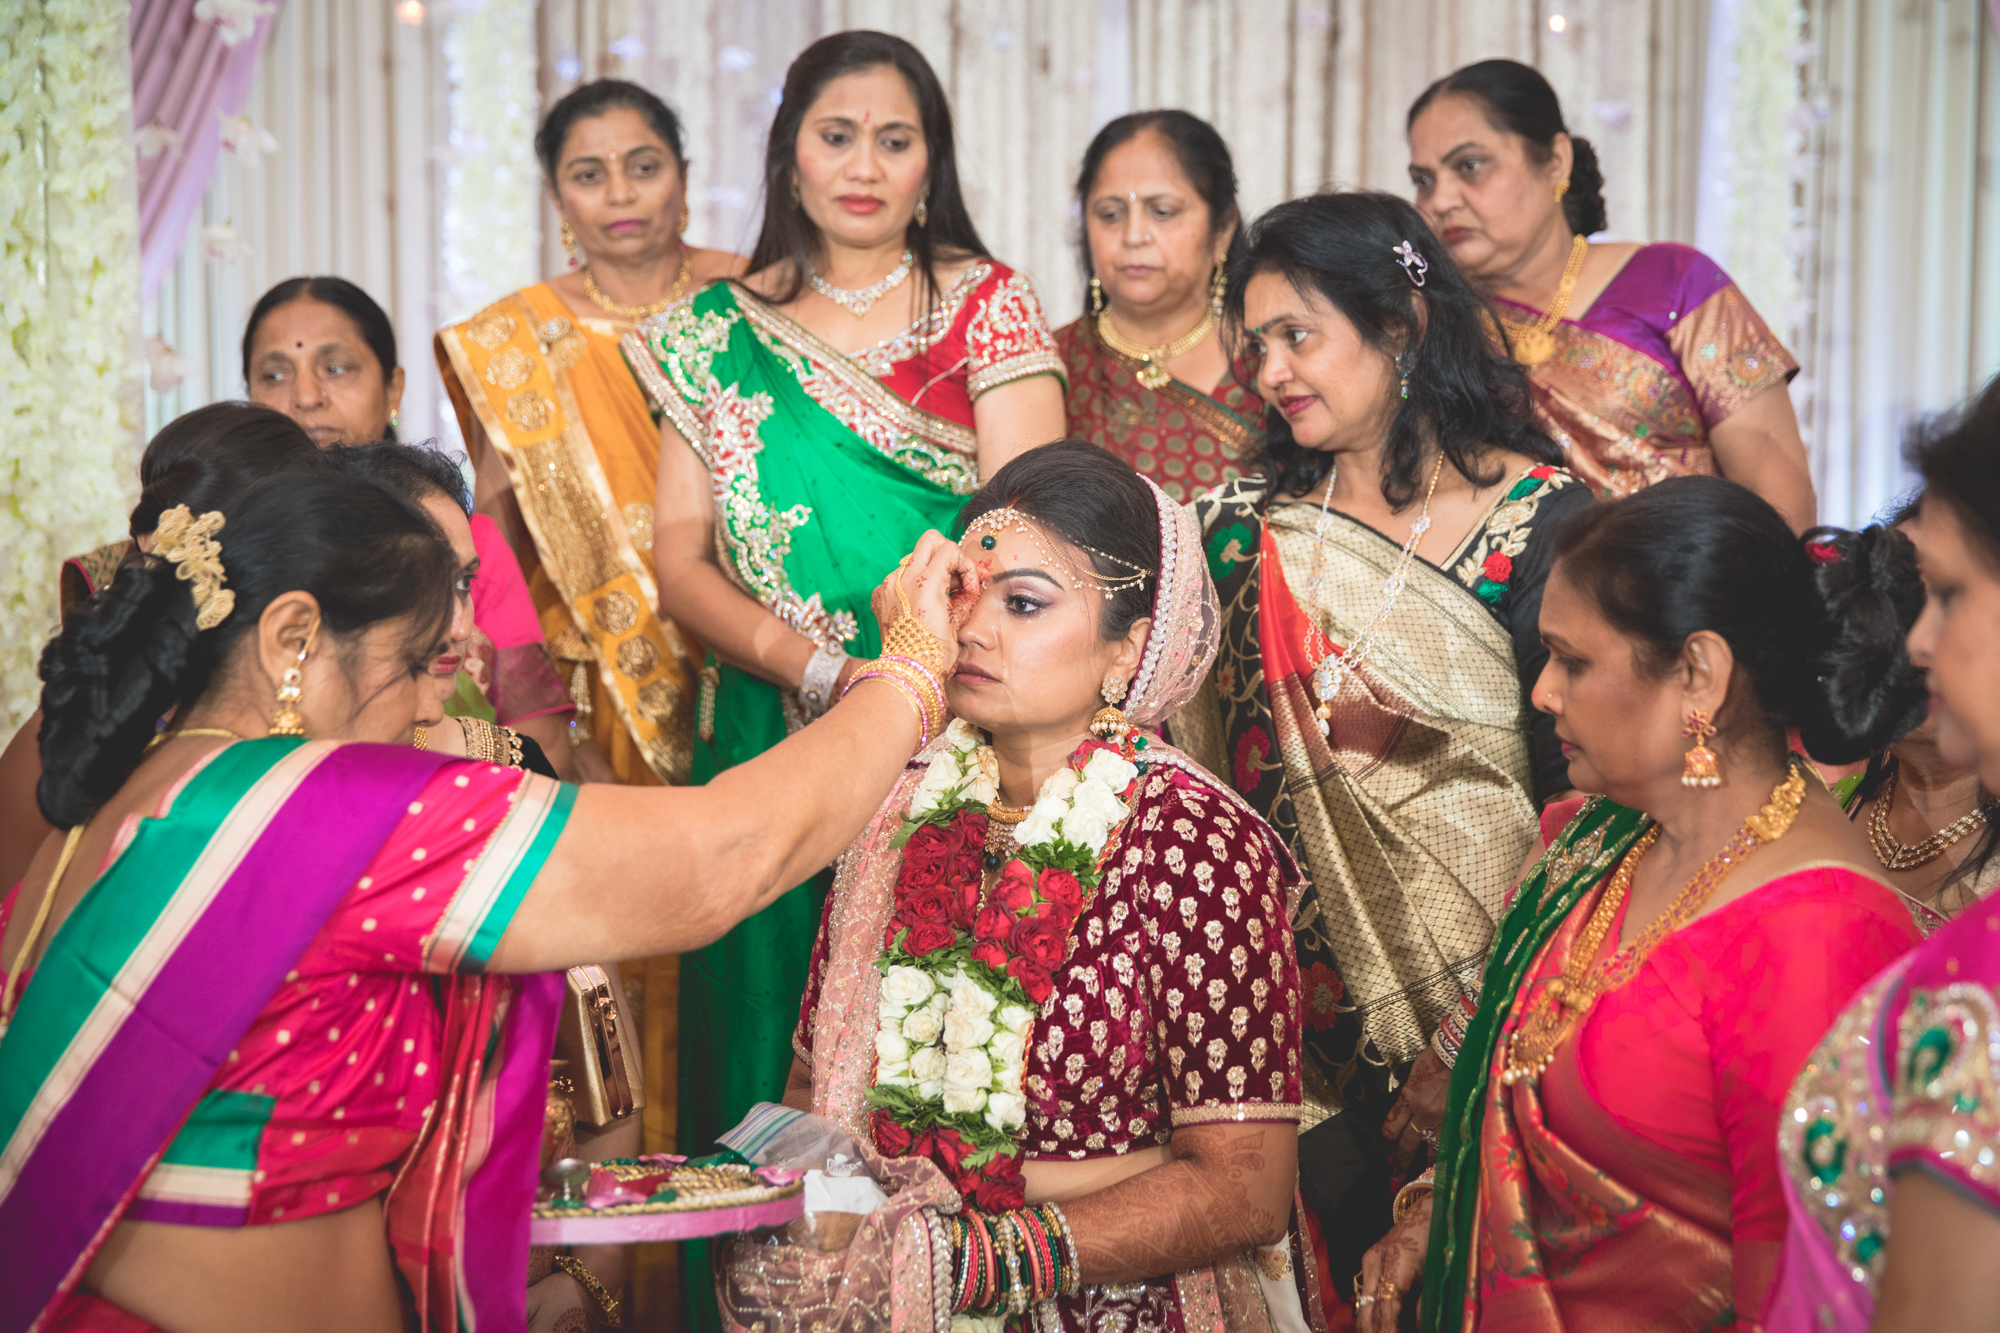 women-blessing-bride.jpg